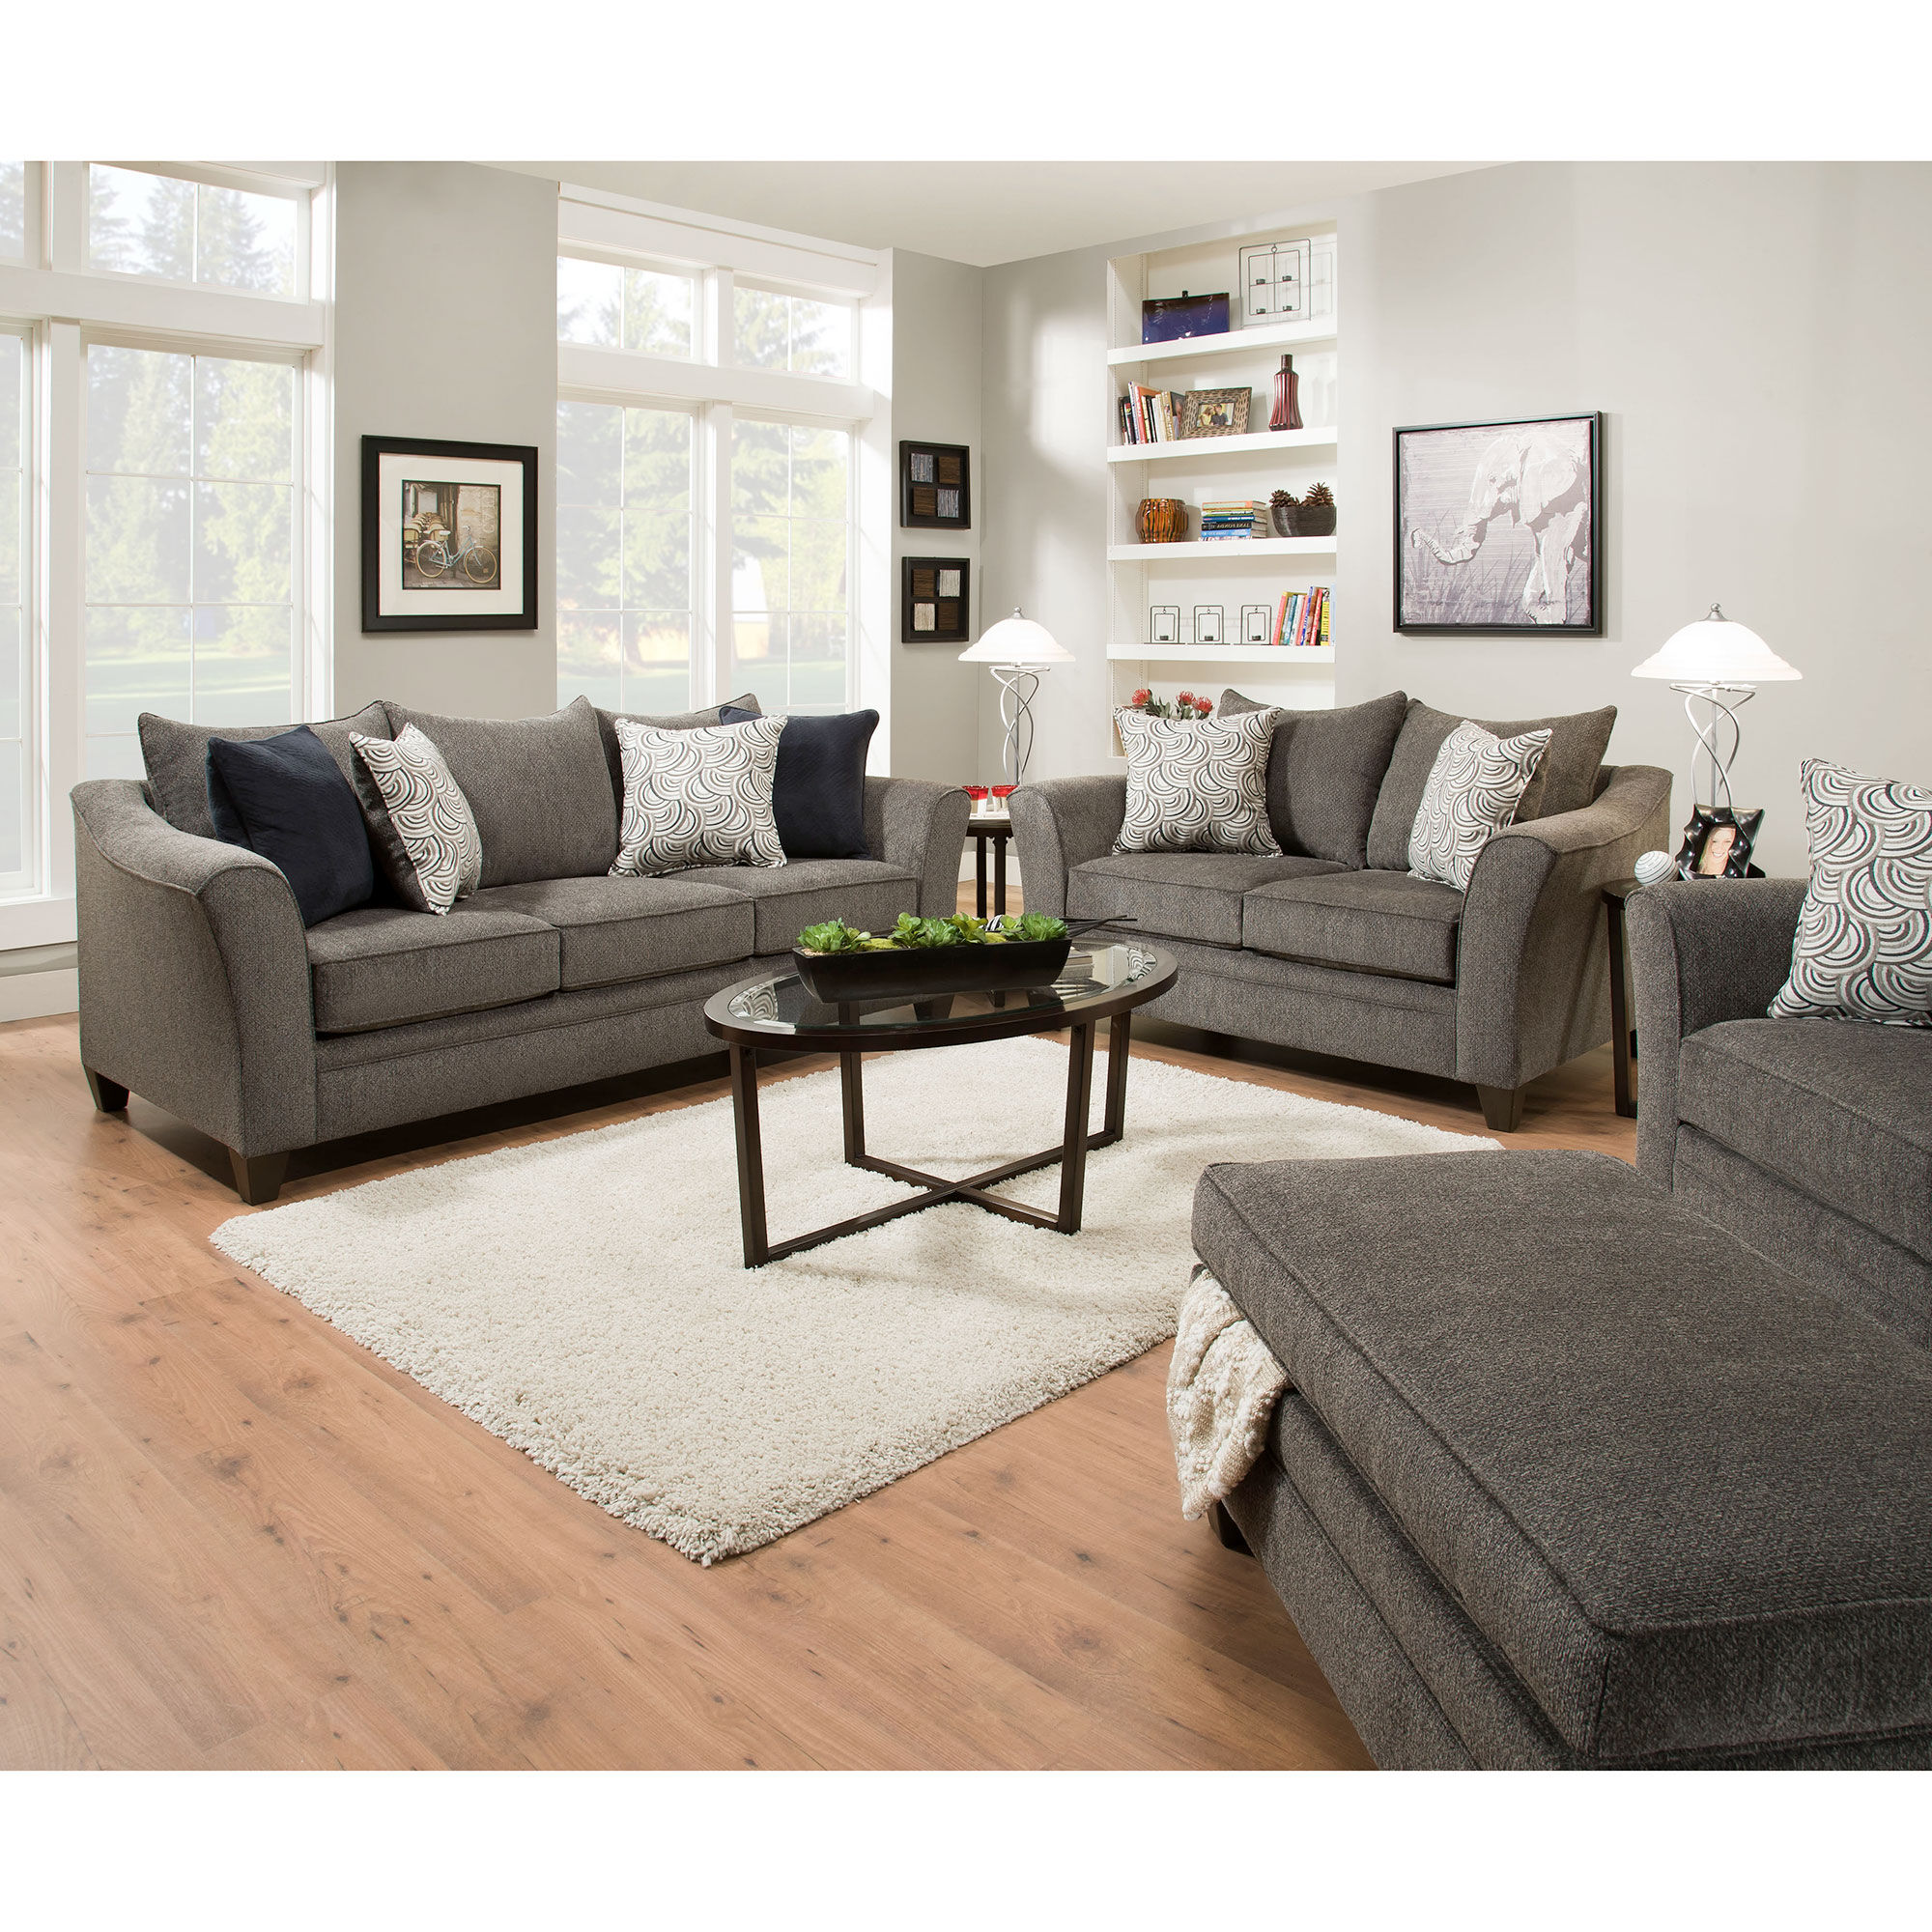 Genial 4 Piece Jada Living Room Collection. United Furniture